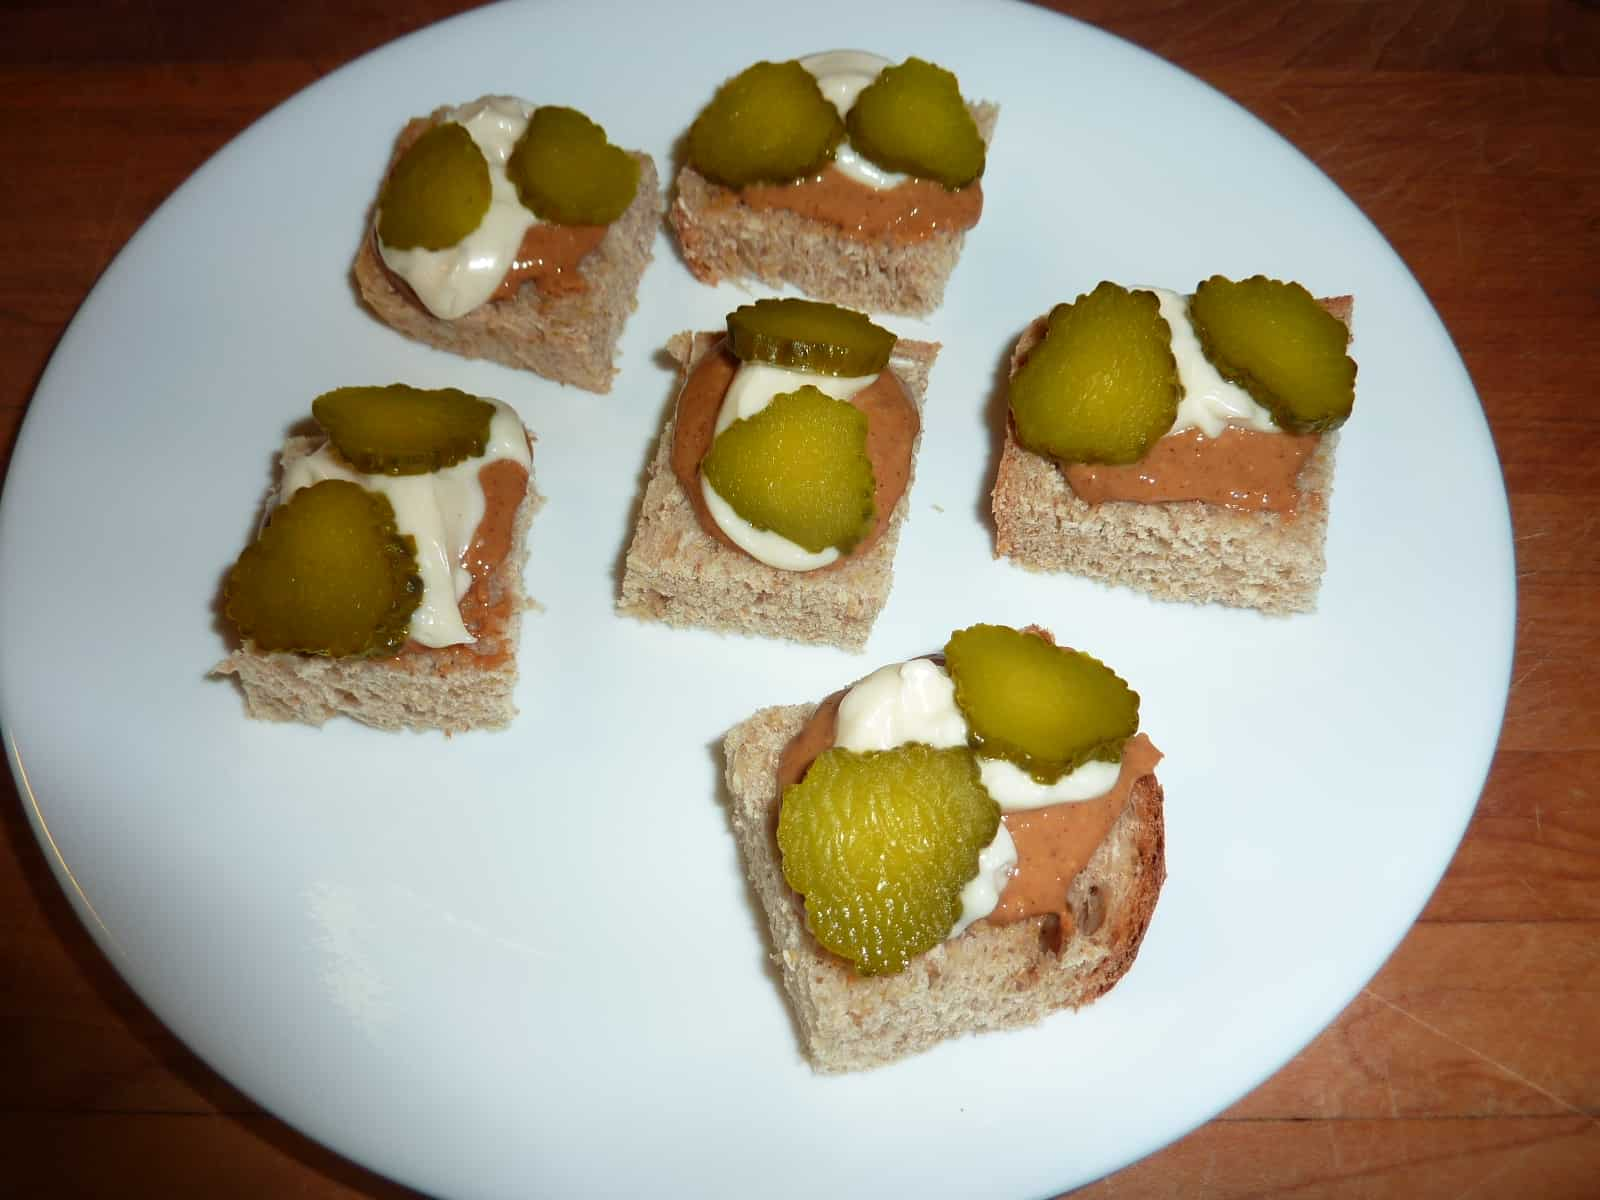 peanut butter pickle and mayonnaise sandwiches or appetizers. Black Bedroom Furniture Sets. Home Design Ideas